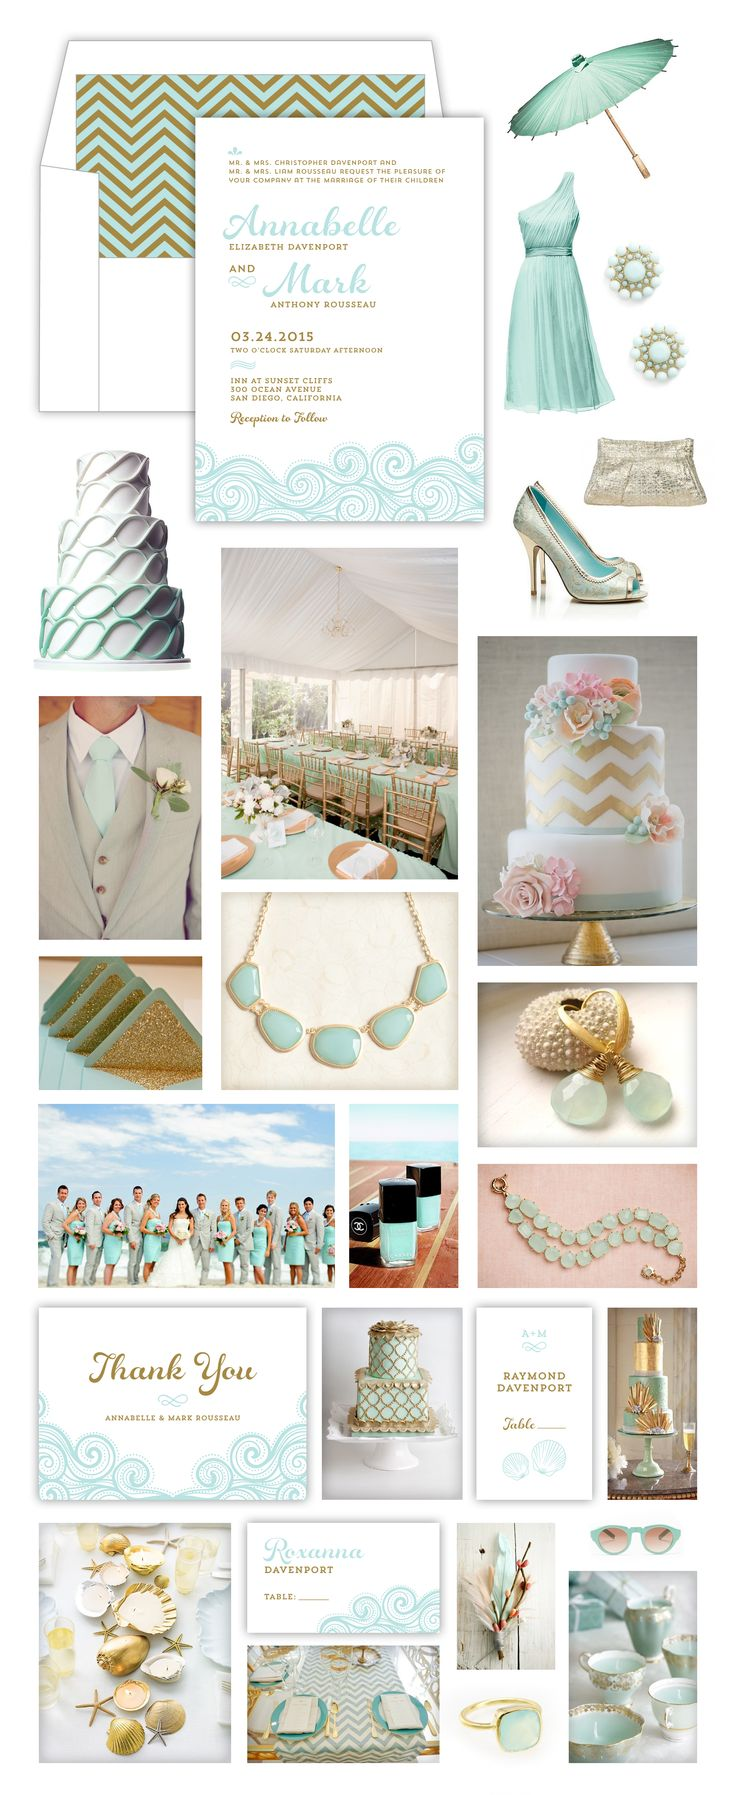 Wedding colors for a beach wedding  AaLaak Ajanee aalaakajanee on Pinterest